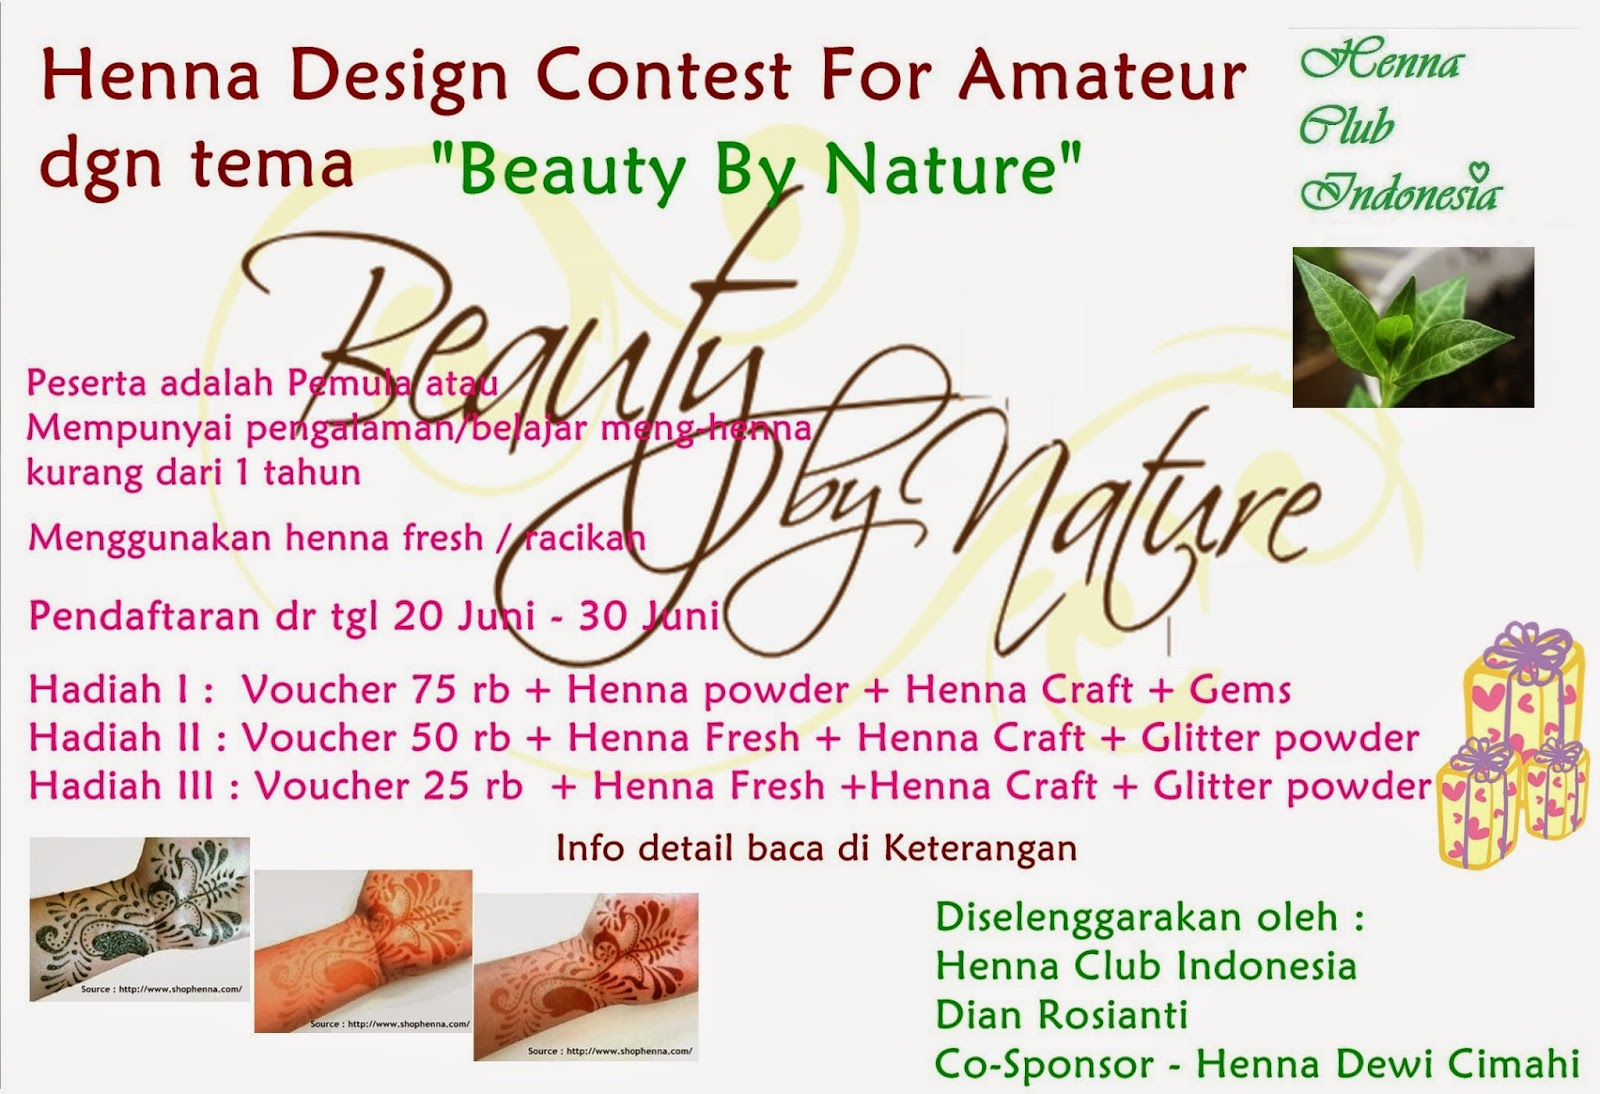 Henna Club Indonesia Henna Design Contest For Amateur Dgn Tema